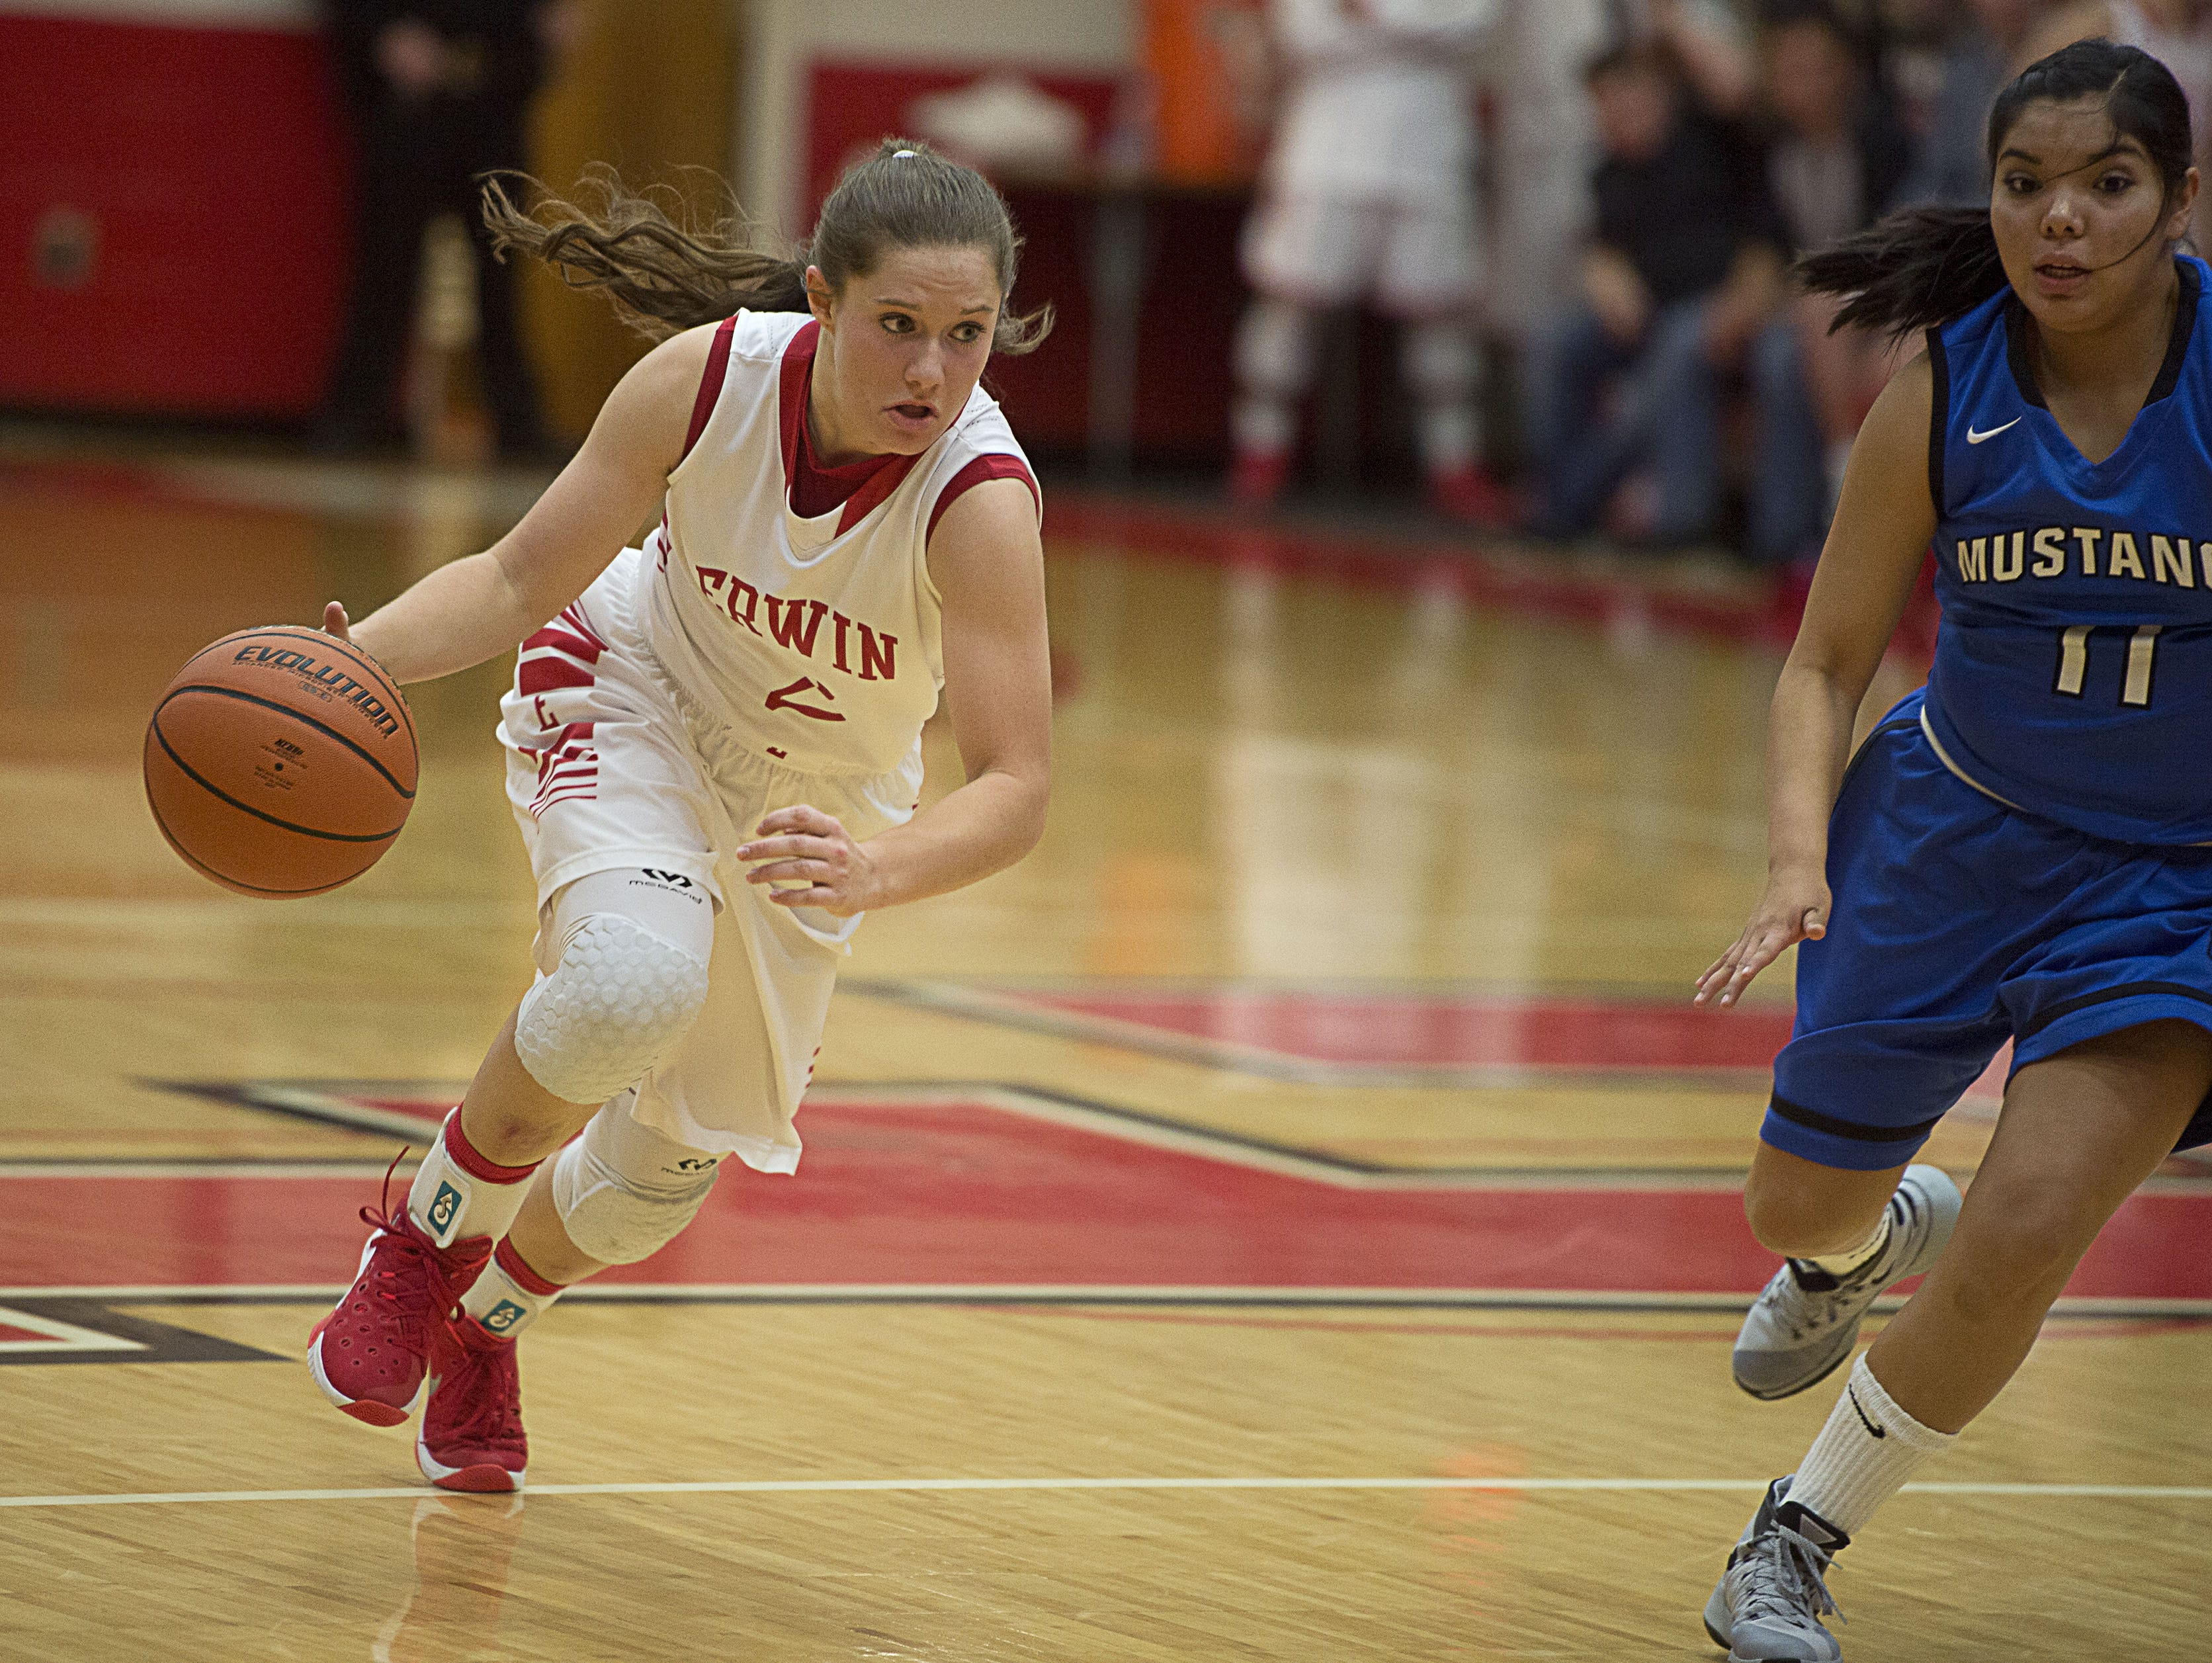 Recent Erwin graduate Dalton Gossett will play in Monday's East-West All-Star girls basketball game in Greensboro.